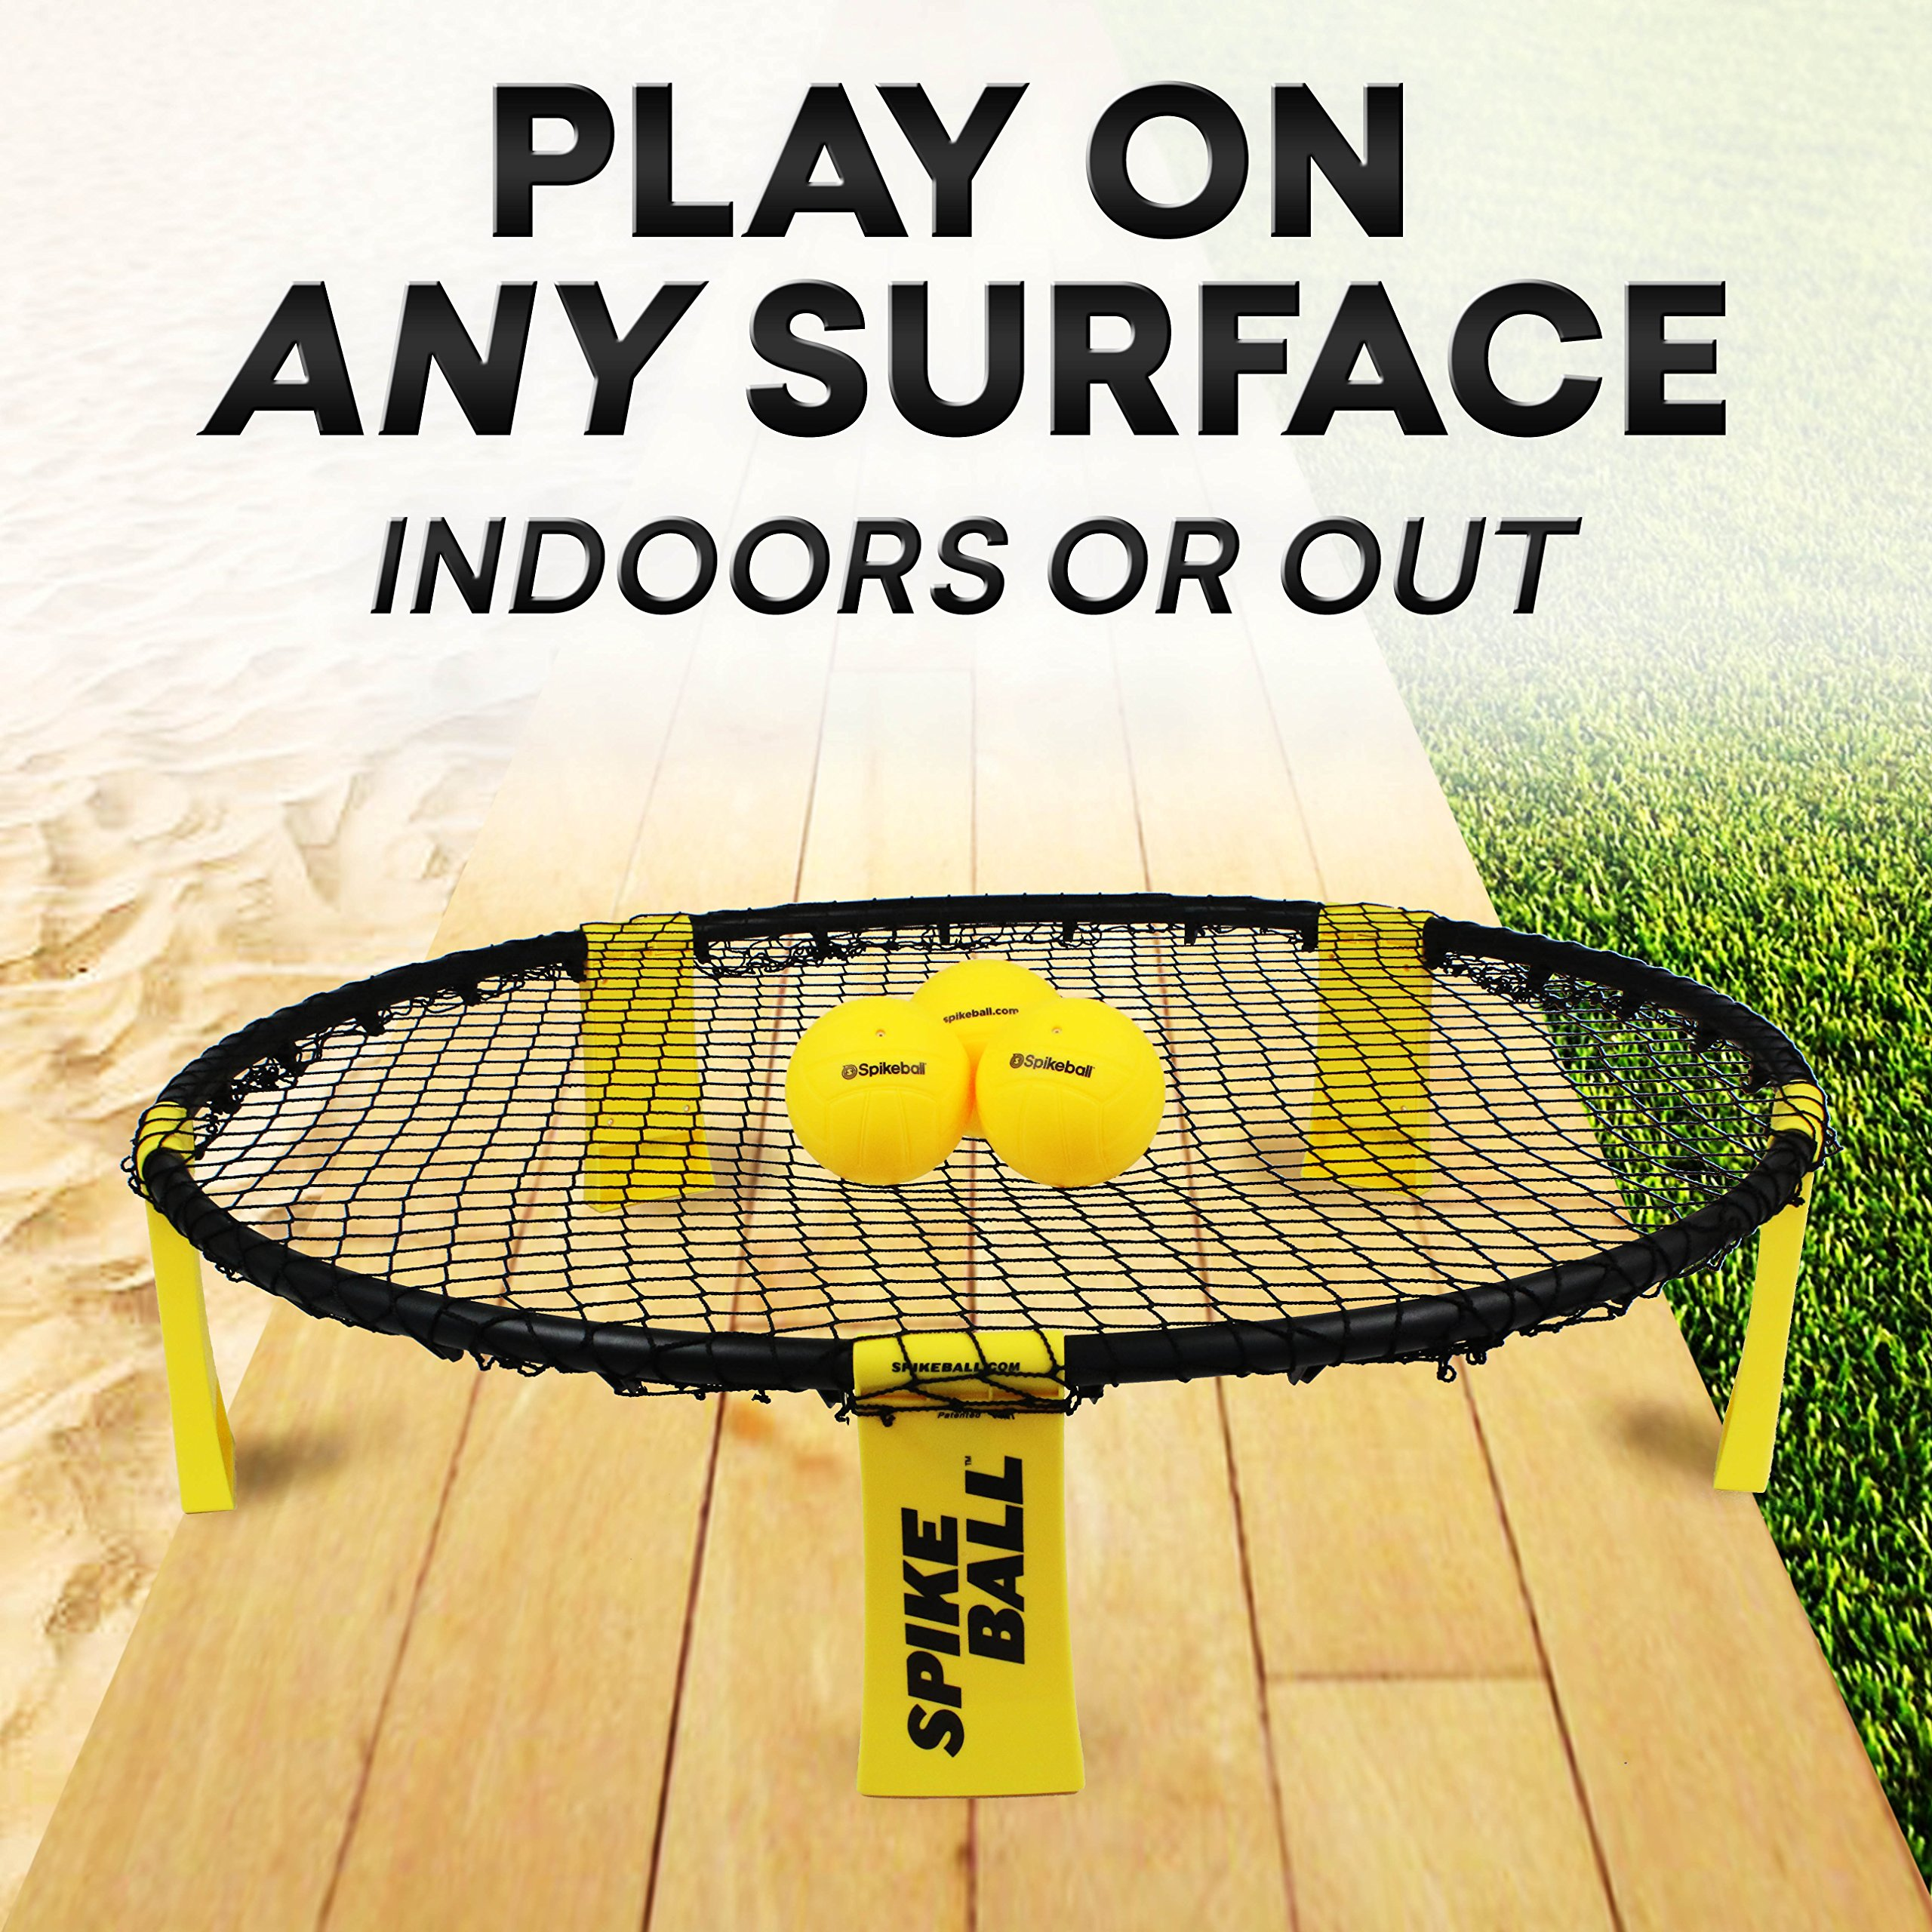 Spikeball 3 Ball Sports Game Set - Outdoor Indoor Gift for Teens, Family - Yard, Lawn, Beach, Tailgate - Includes Playing Net, 3 Balls, Drawstring Bag, Rule Book- As Seen on Shark Tank (3 Ball Set) by Spikeball (Image #3)